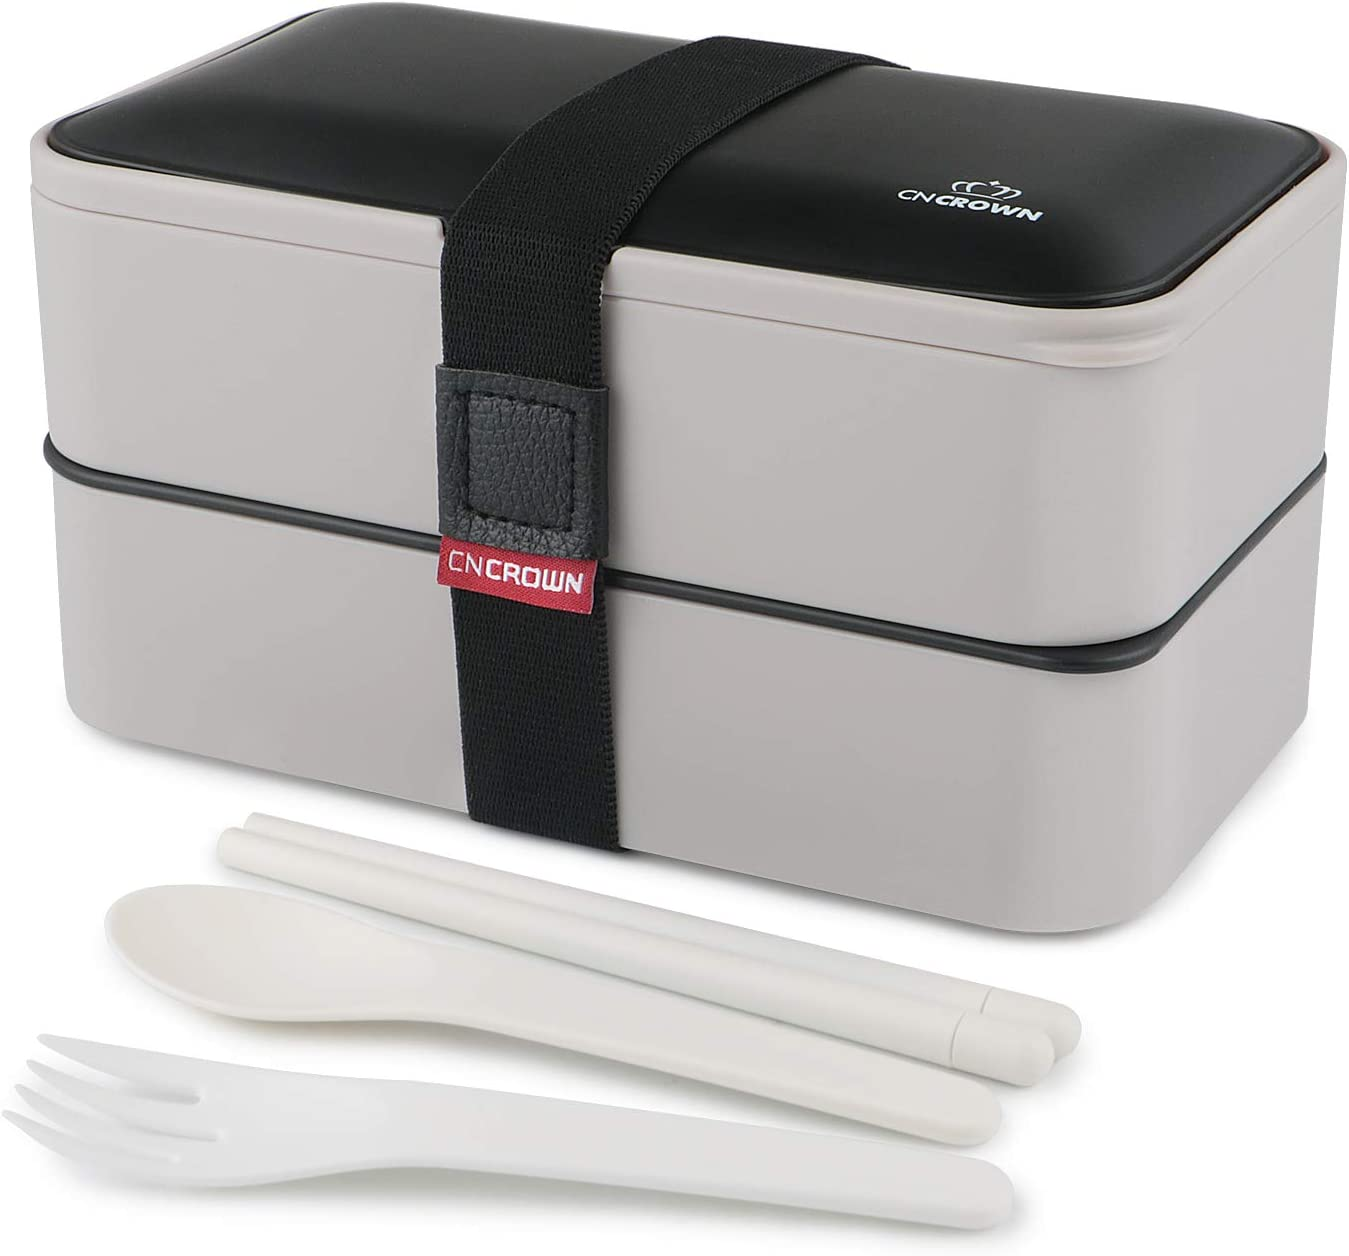 Santoi Lunch Bento Box 2-Compartment Hermetic with Reusable Cutlery Lunch Boxes Container for Adults Kids Suitable for Microwave, Freezer and Dishwasher Healthy,Durable and Portable